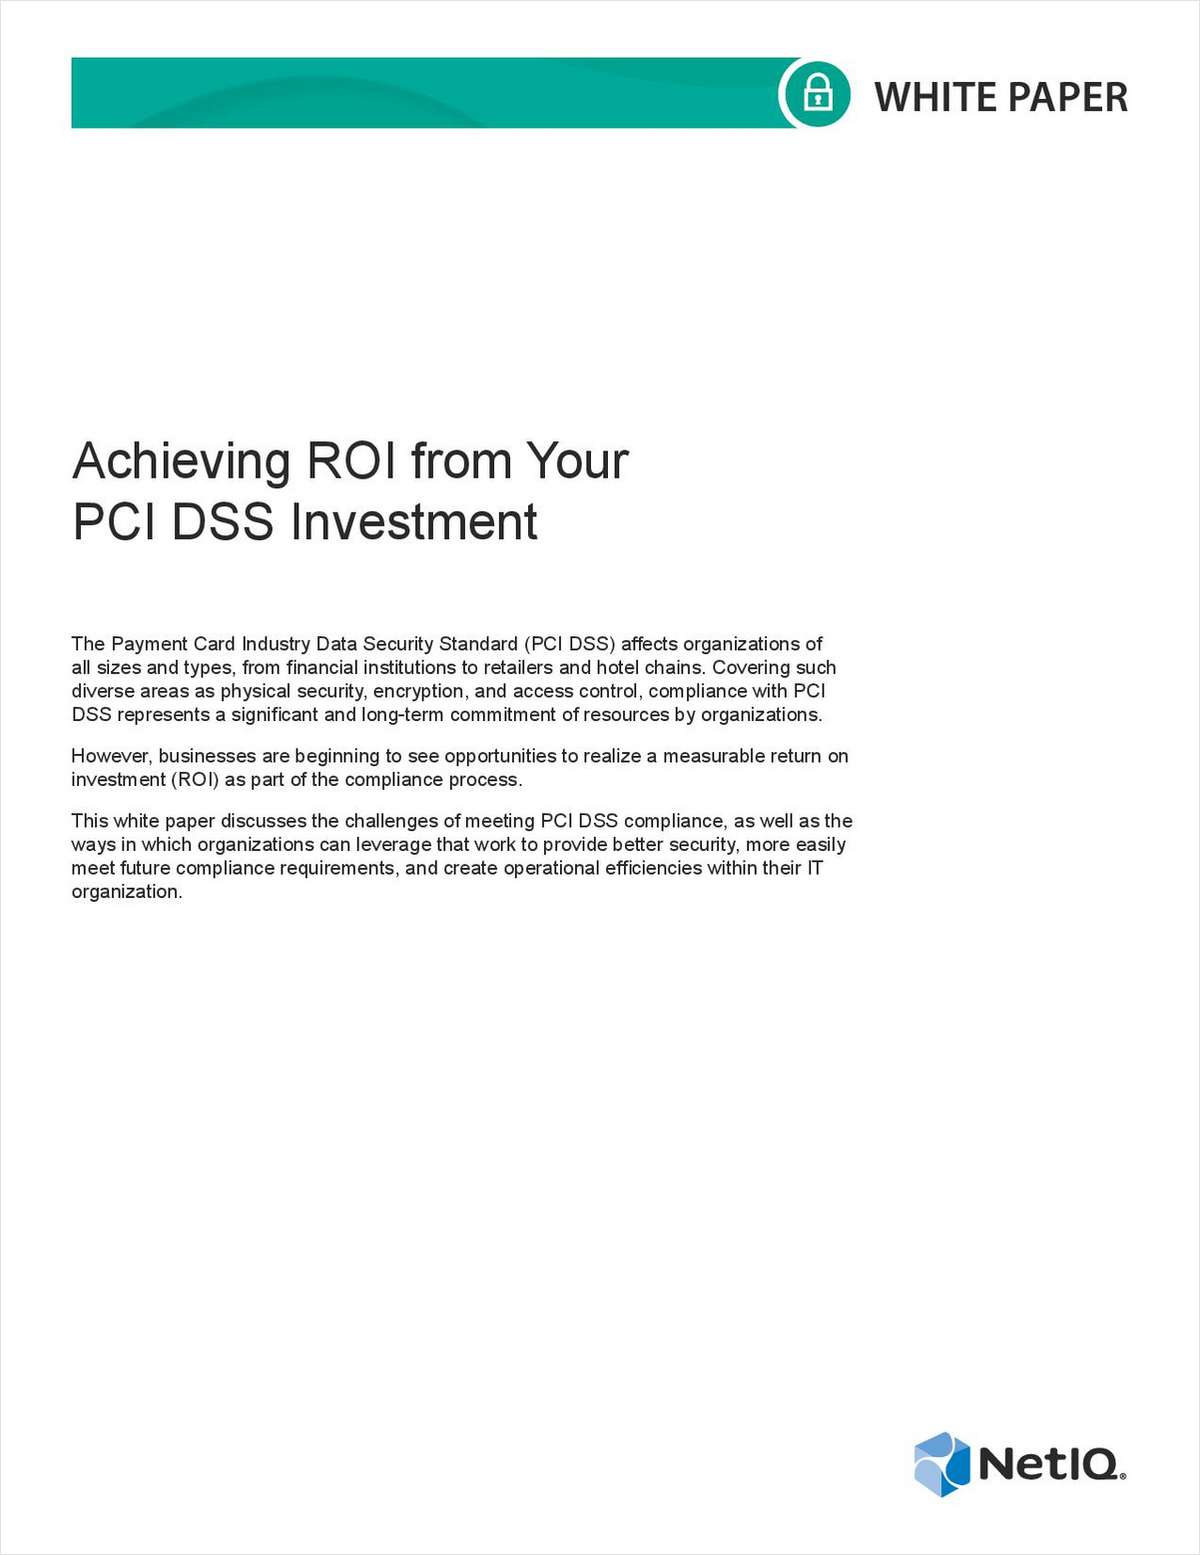 Achieving ROI from Your PCI DSS Investment